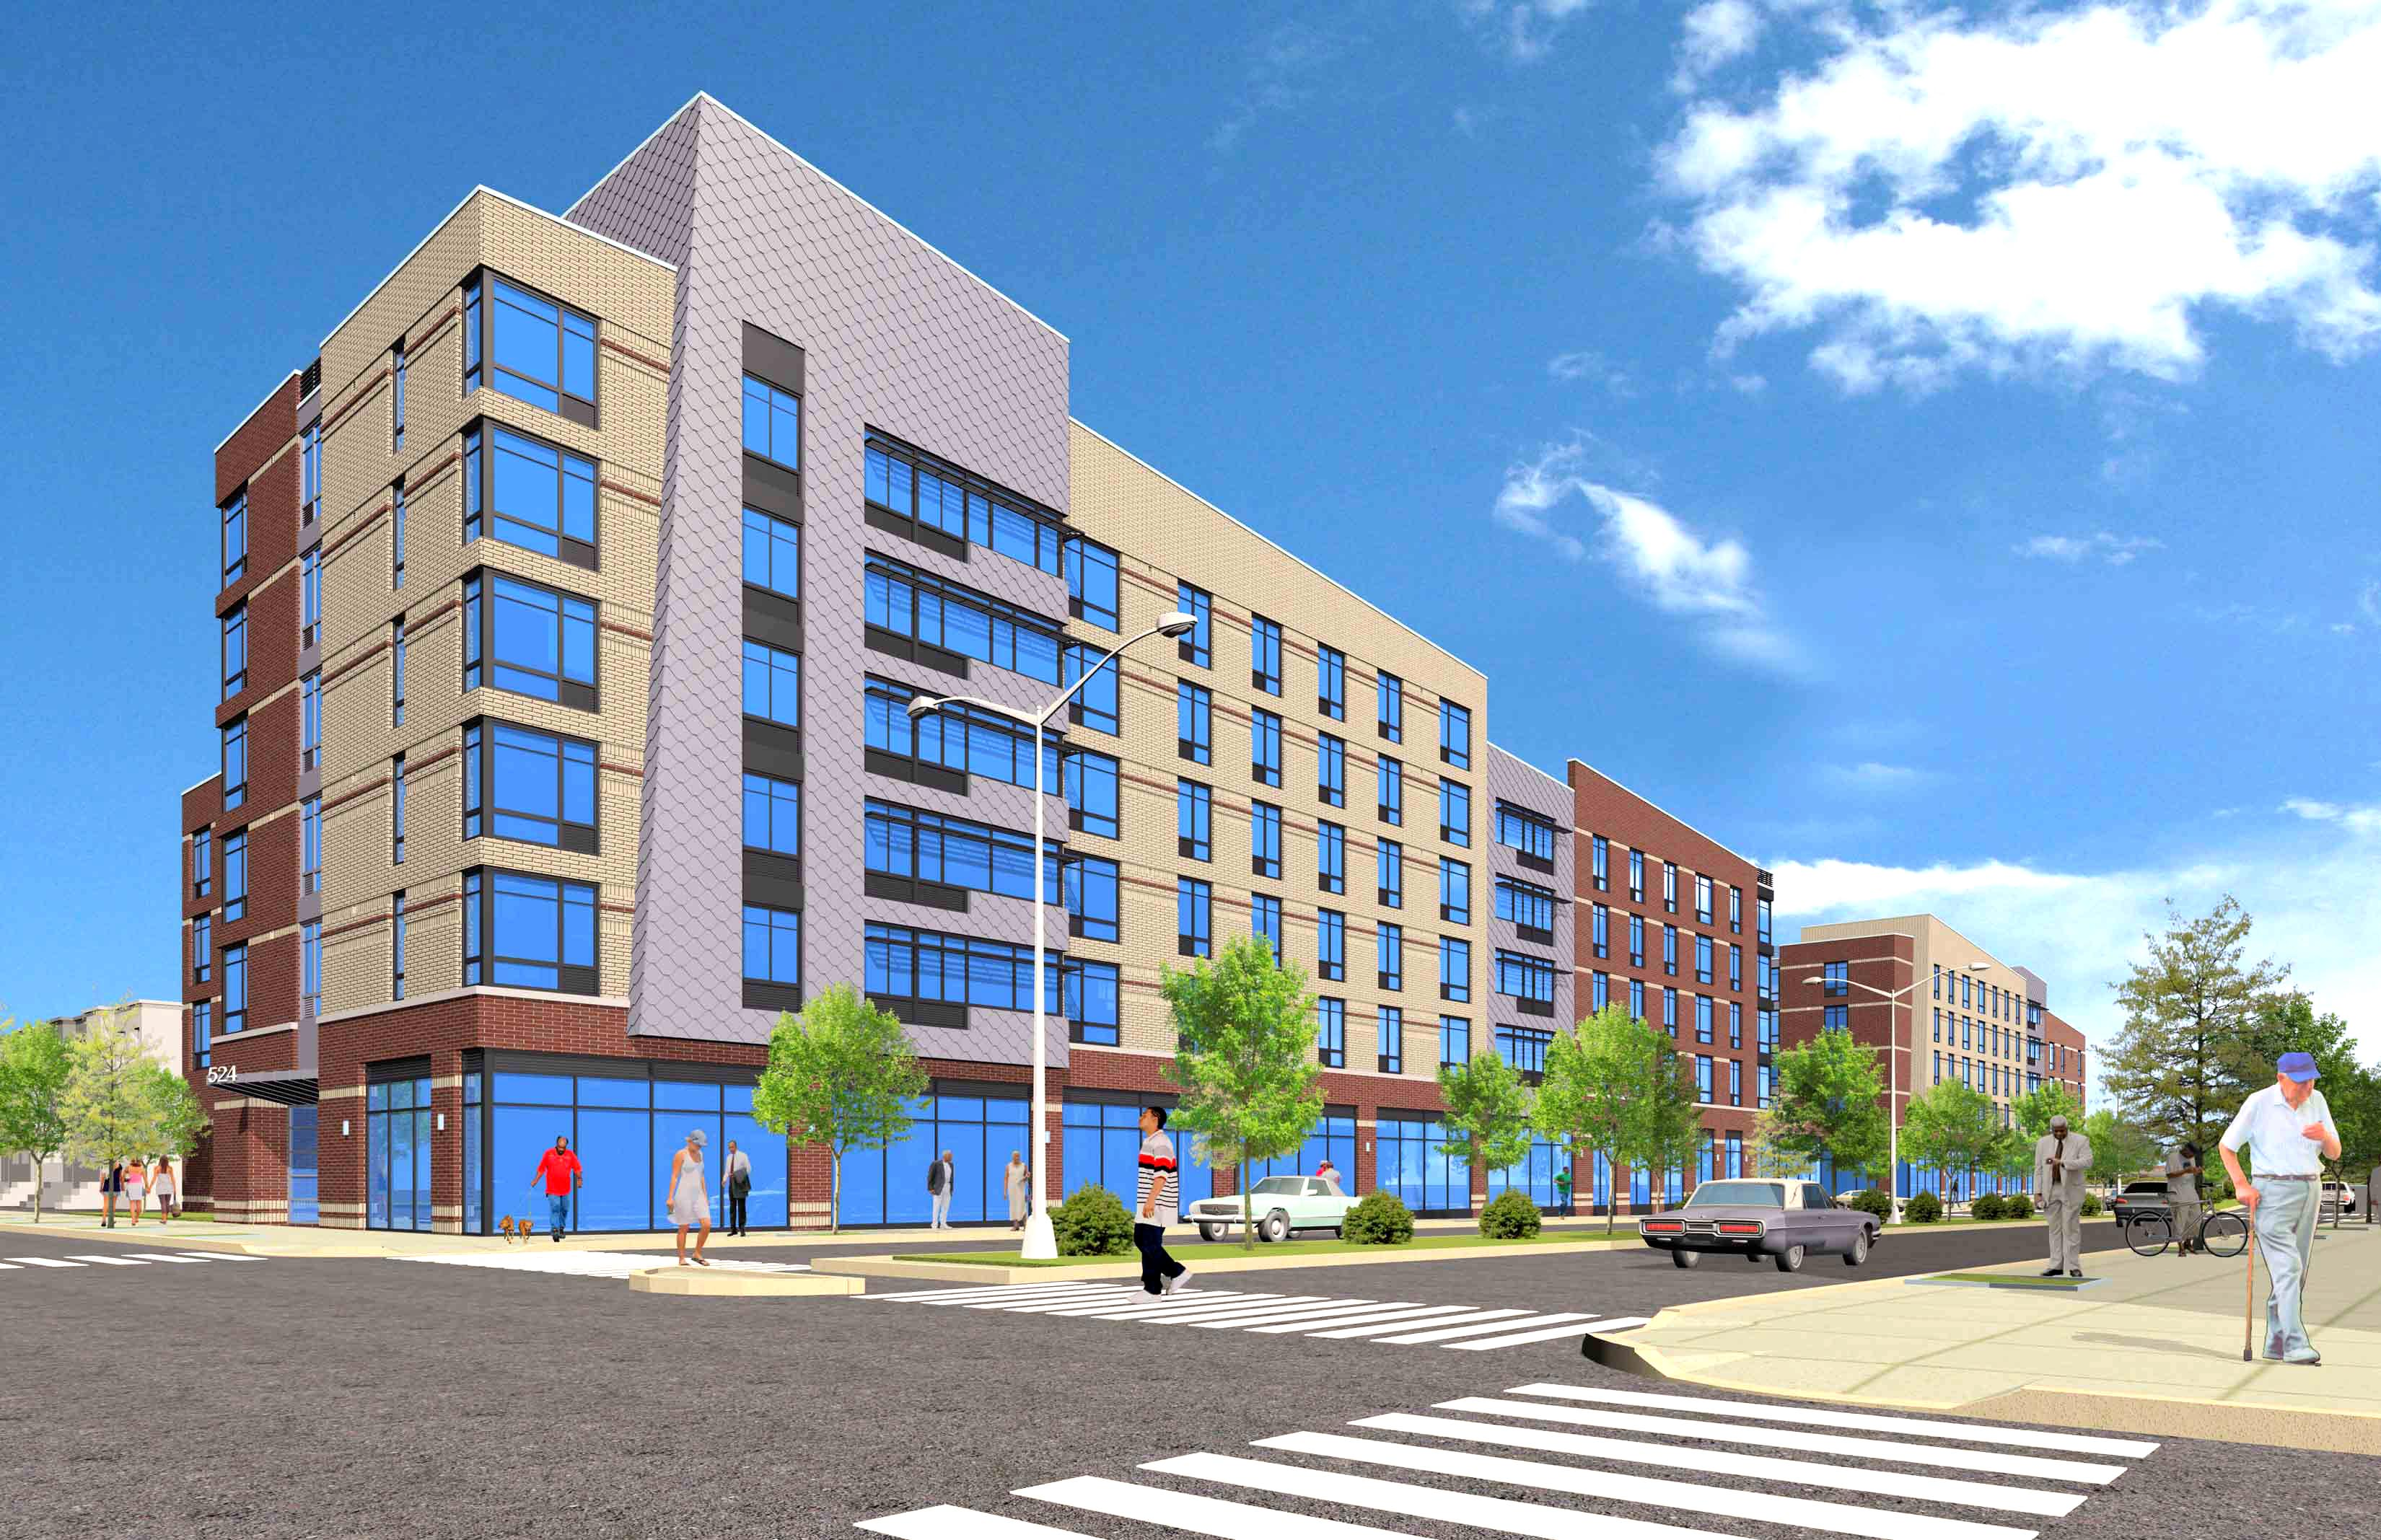 Gateway Elton Street II, rendering by MGH Architects